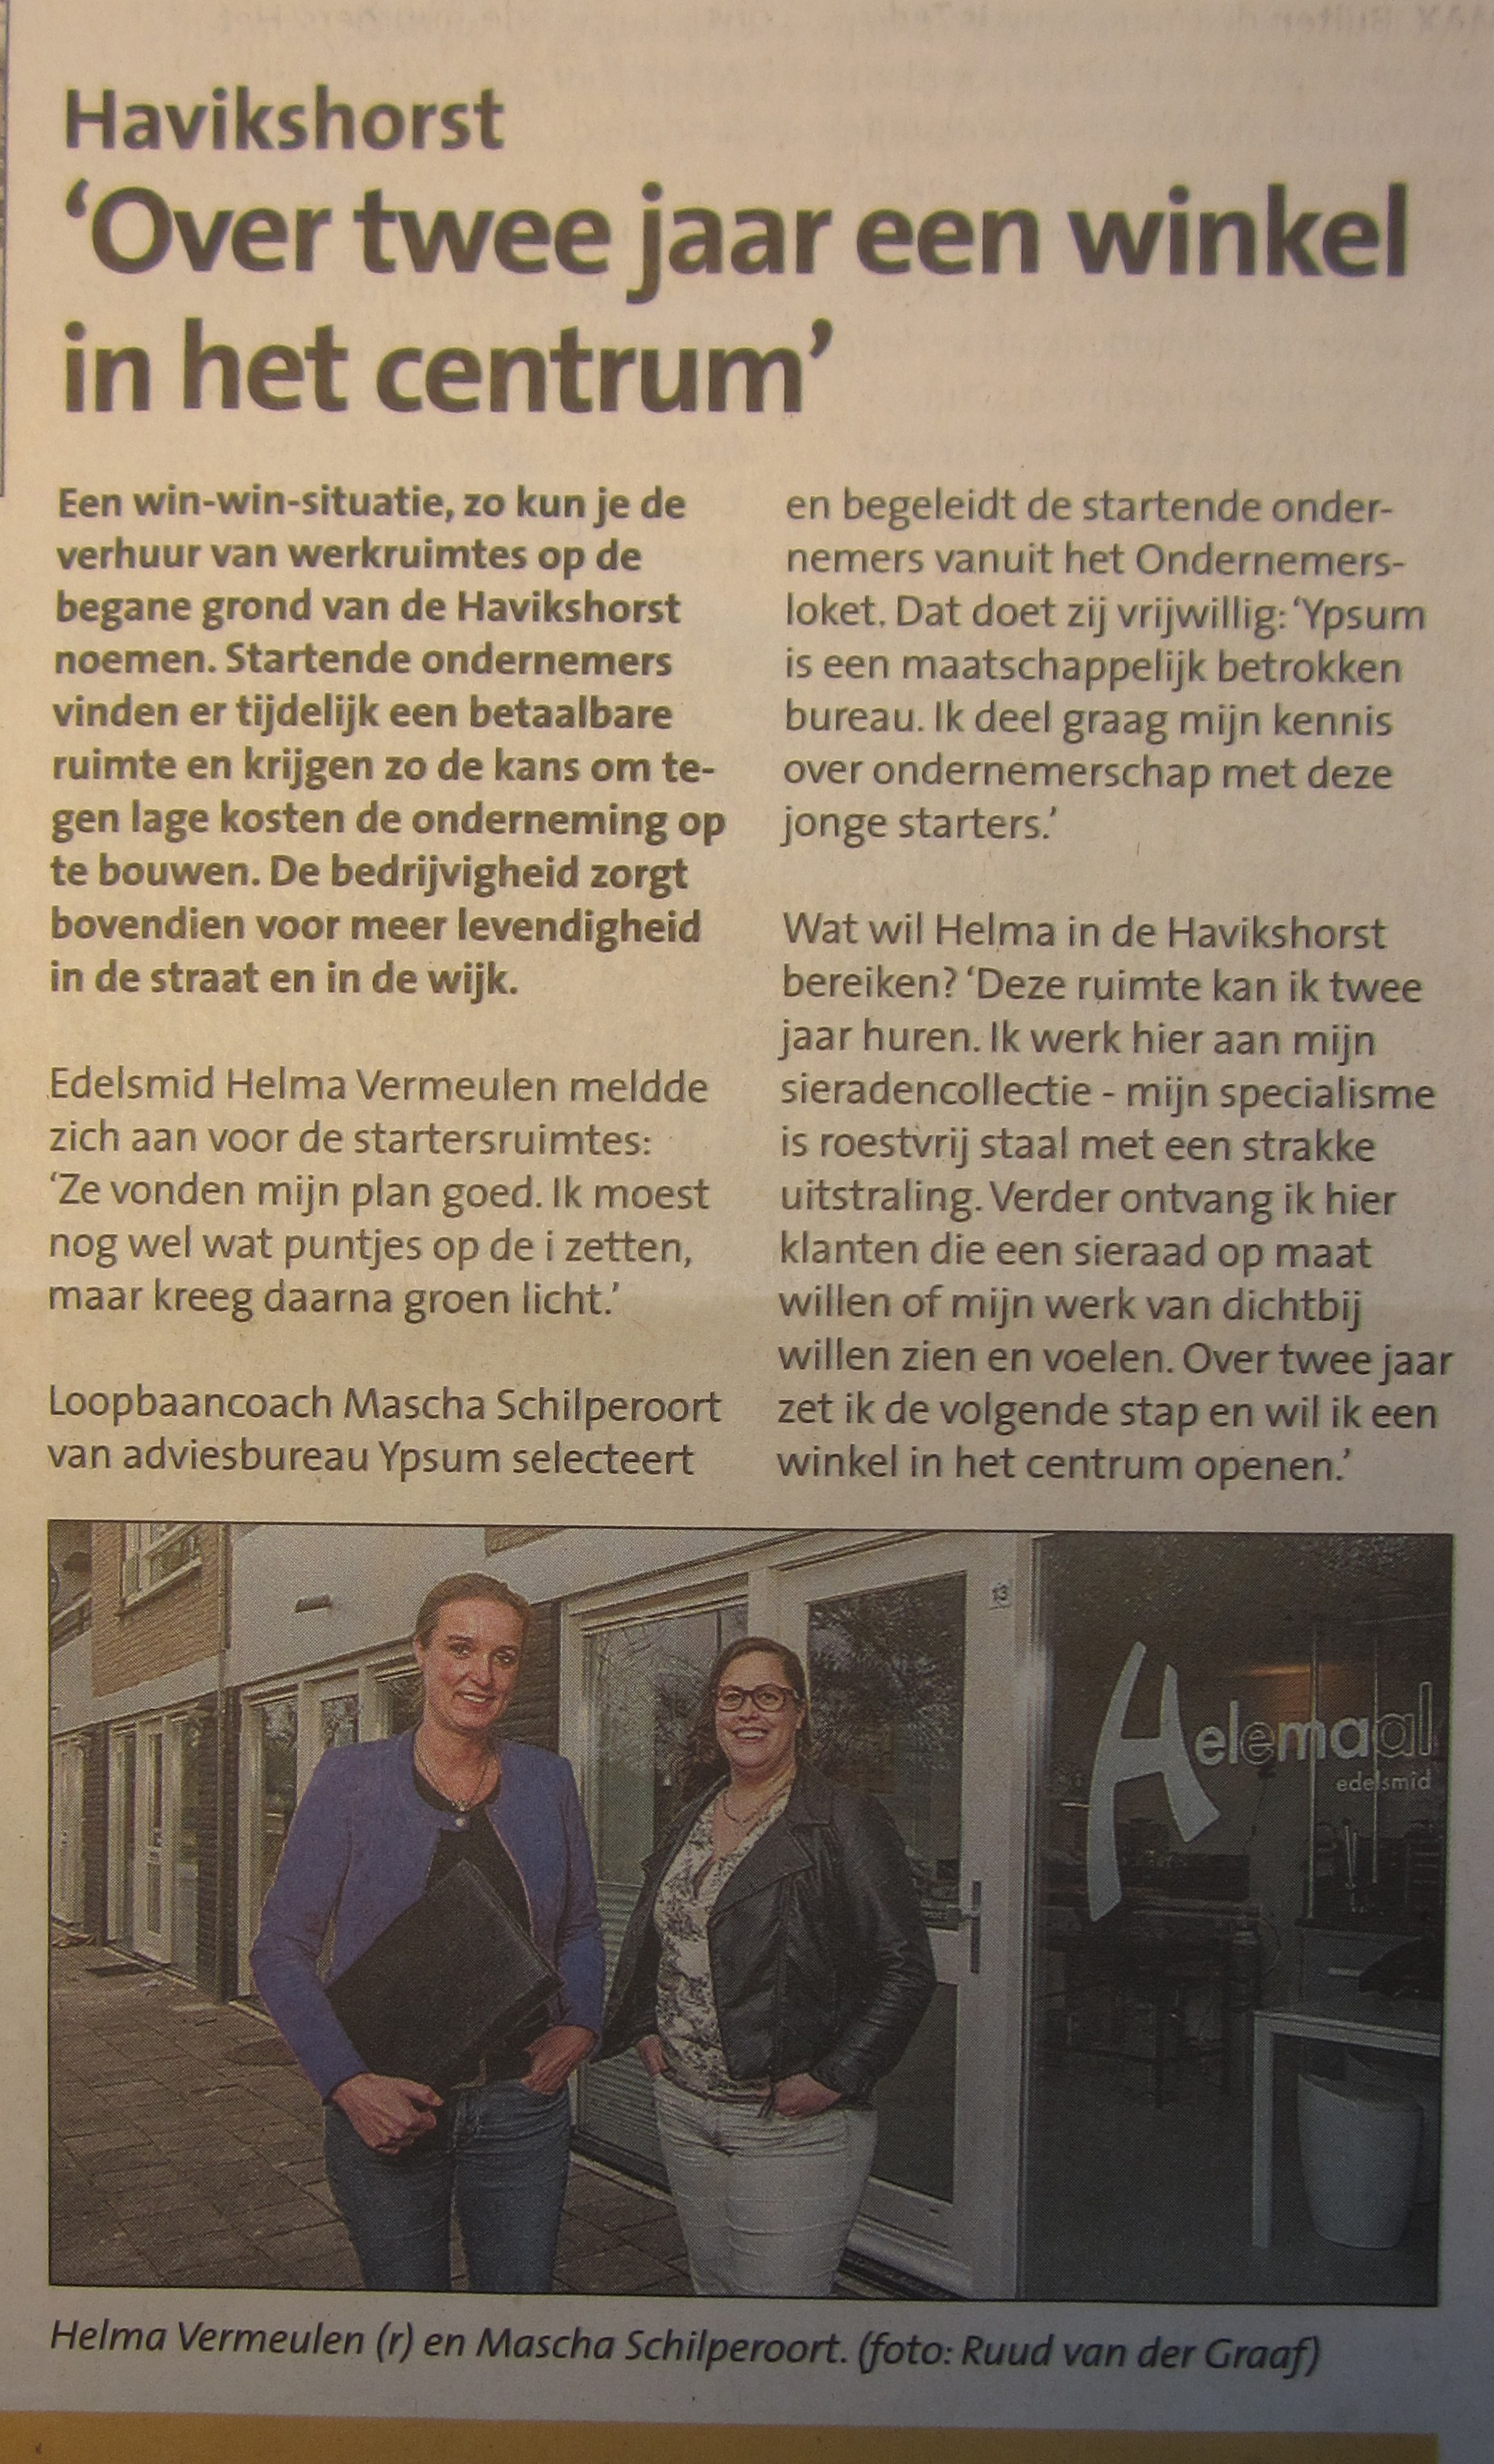 Over 2 jaar in het centrum